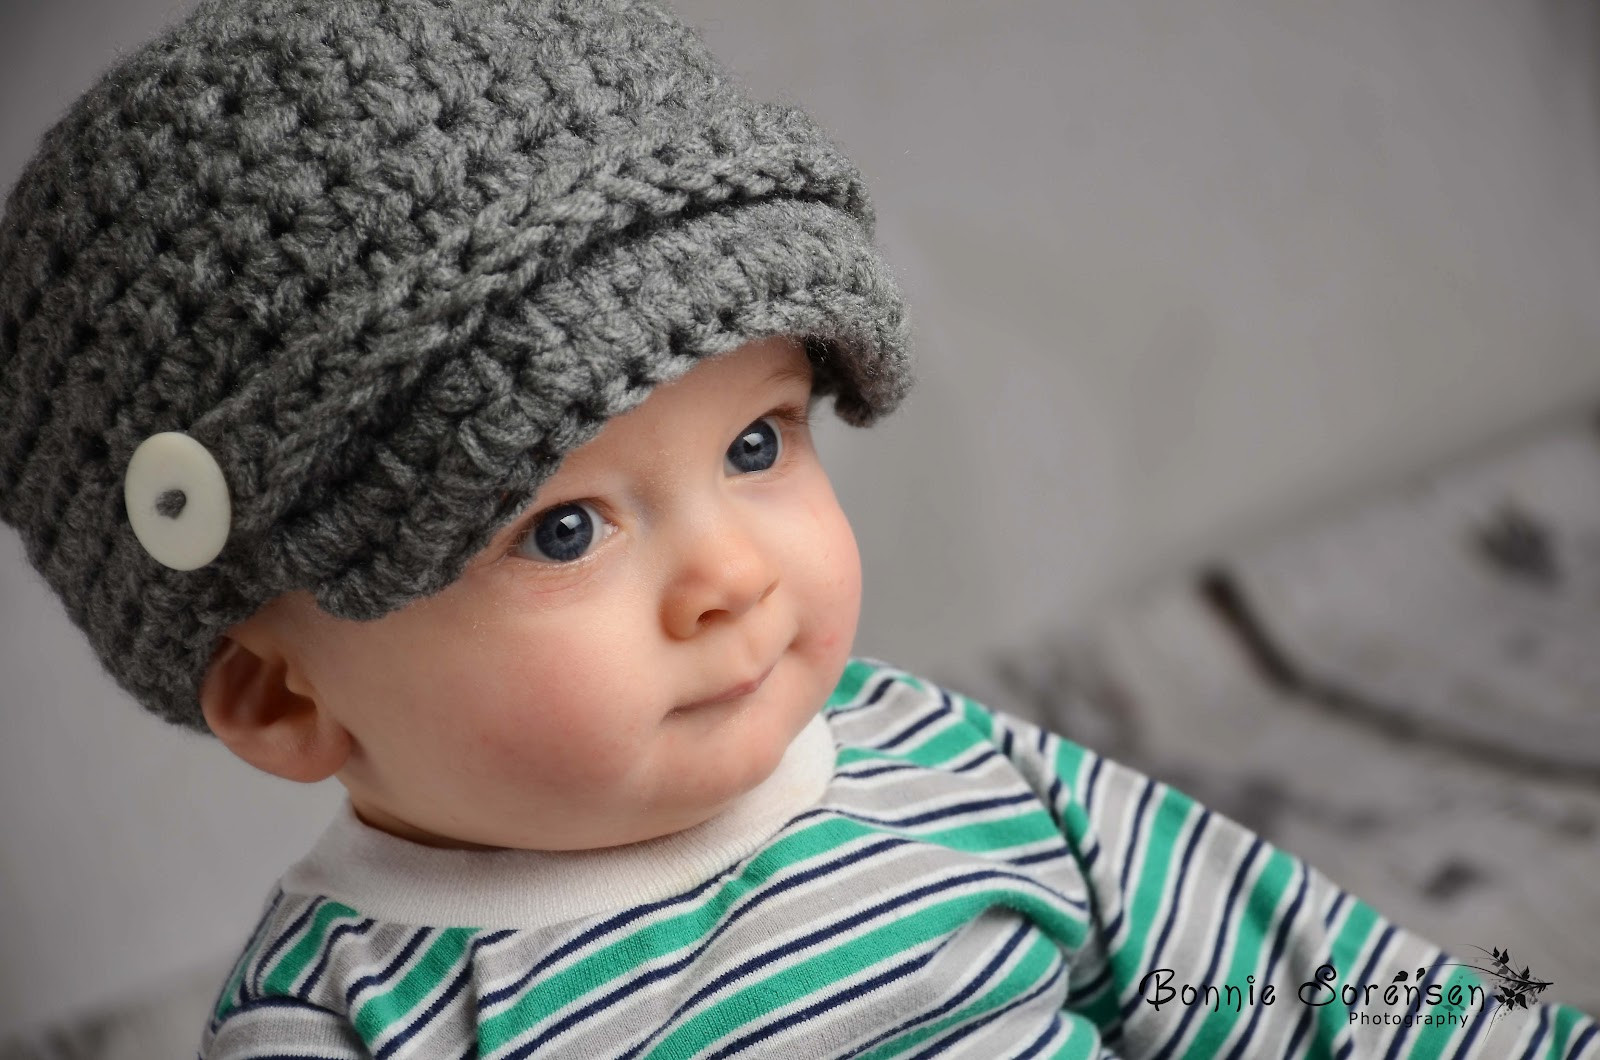 Awesome See the Good In Life Cute Crochet Newsboy Hat Cute Crochet Hats Of Awesome 41 Ideas Cute Crochet Hats